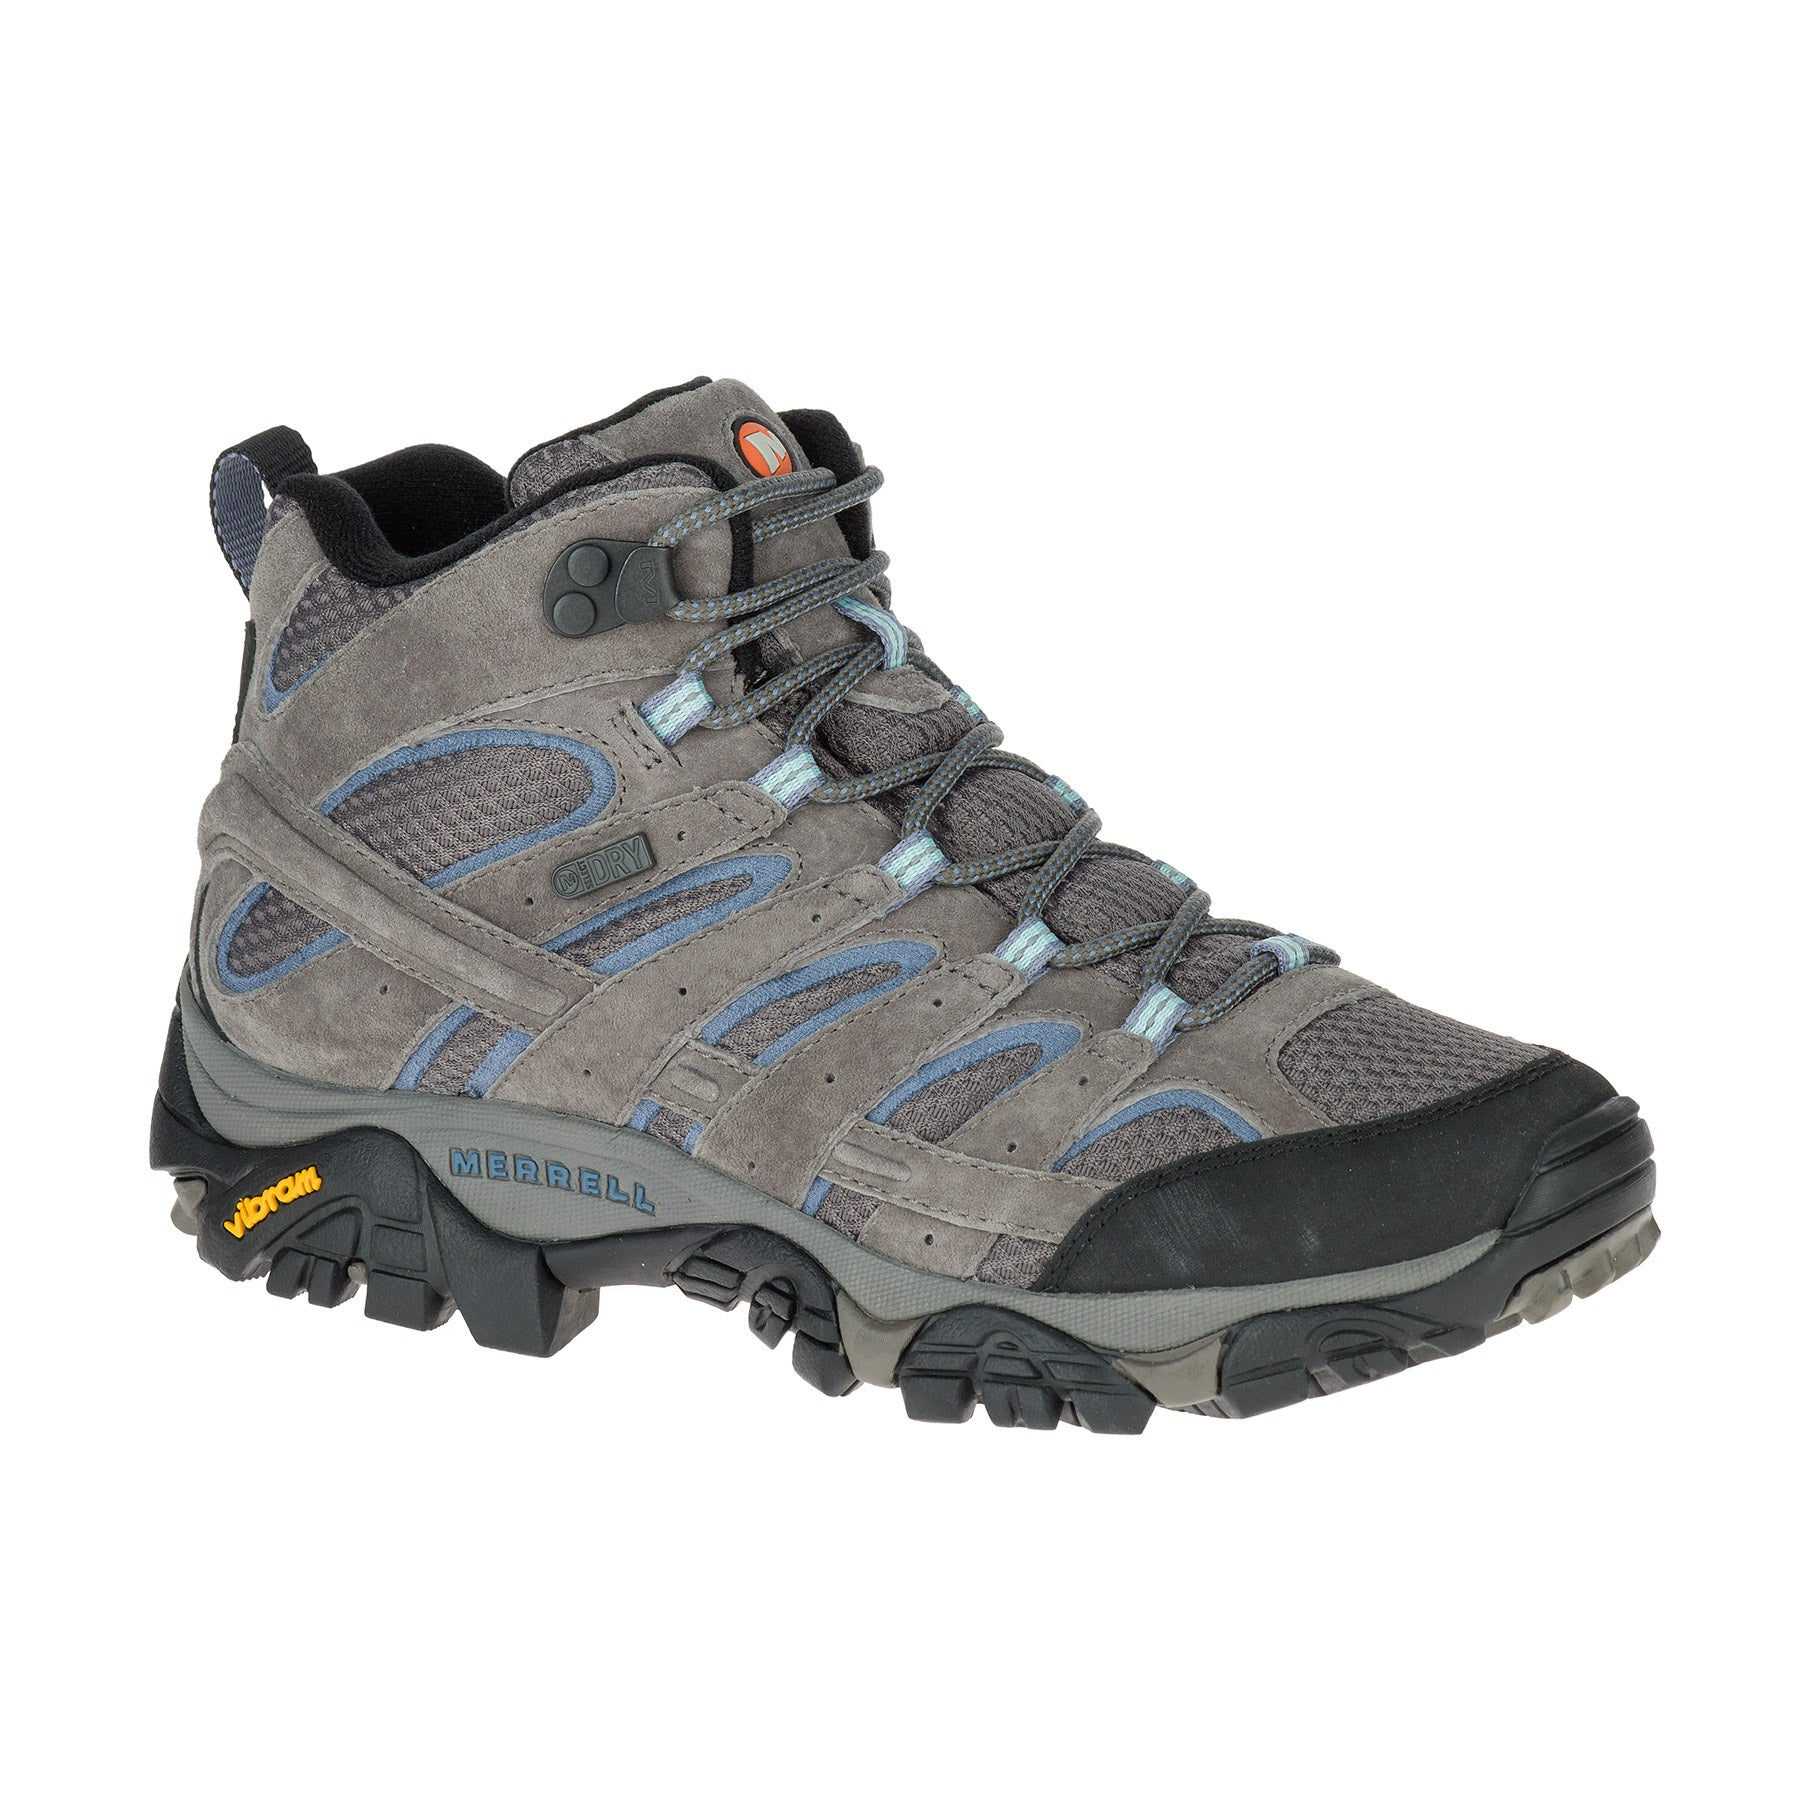 merrell moab 2 mid waterproof womens hiking boots side view in colors grey brown and blue